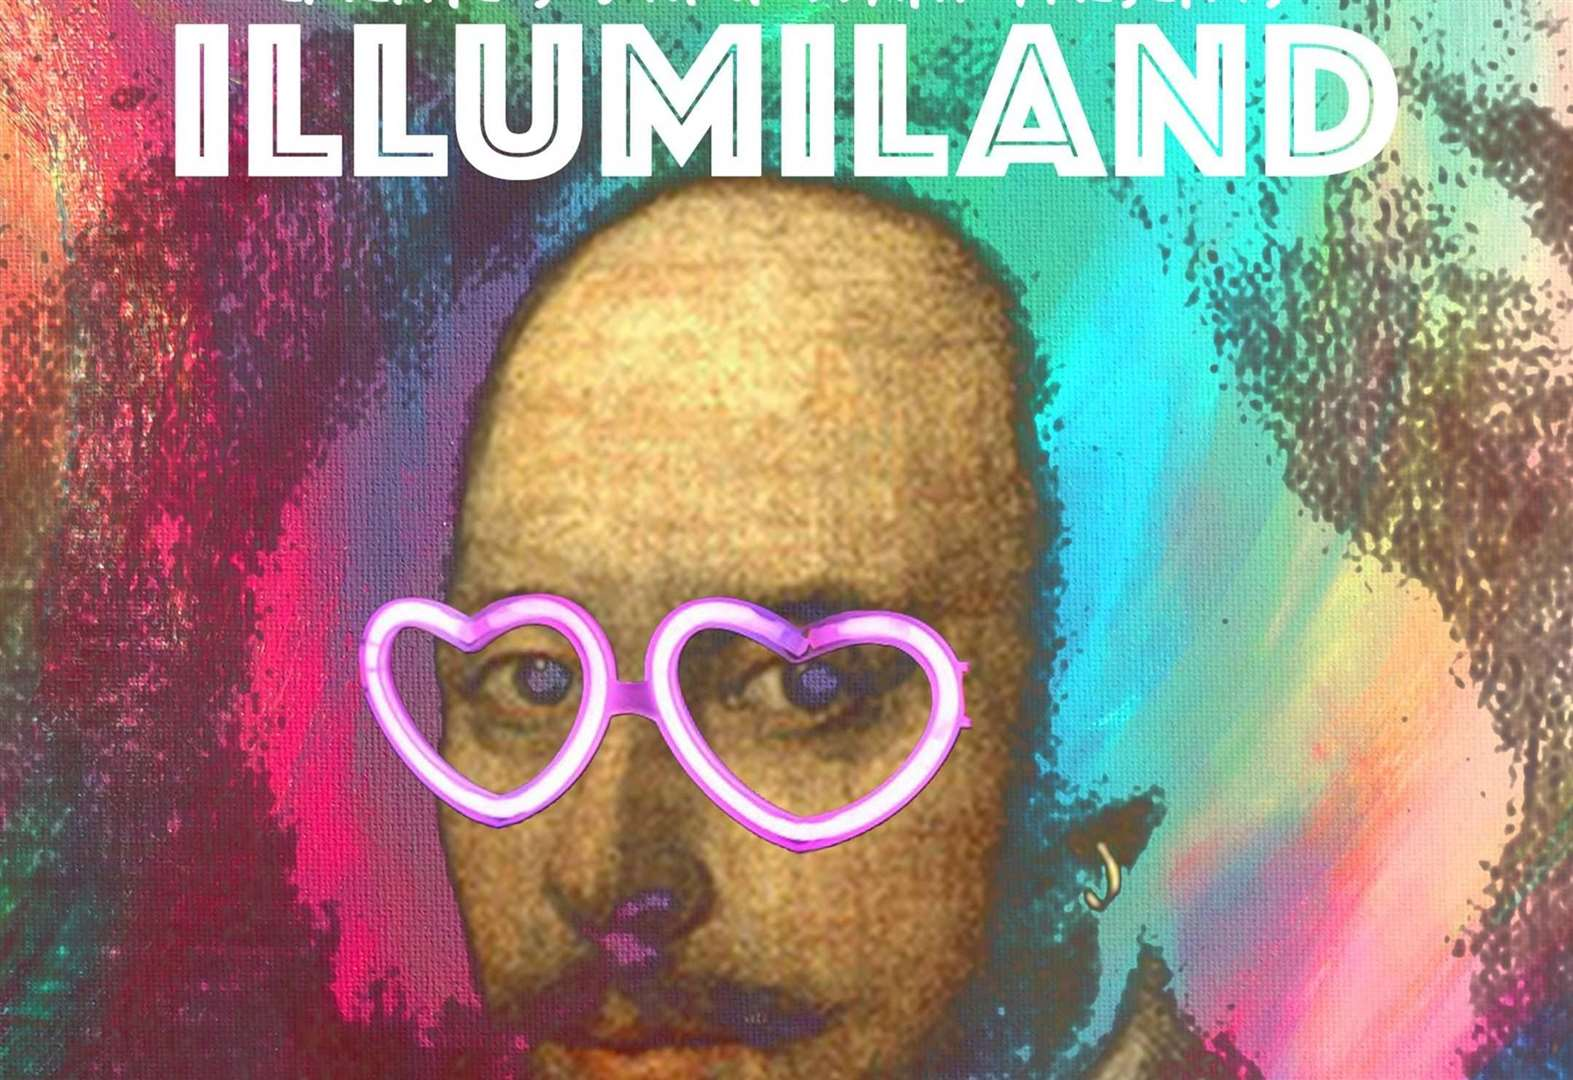 Illumiland festival is all about the Bard